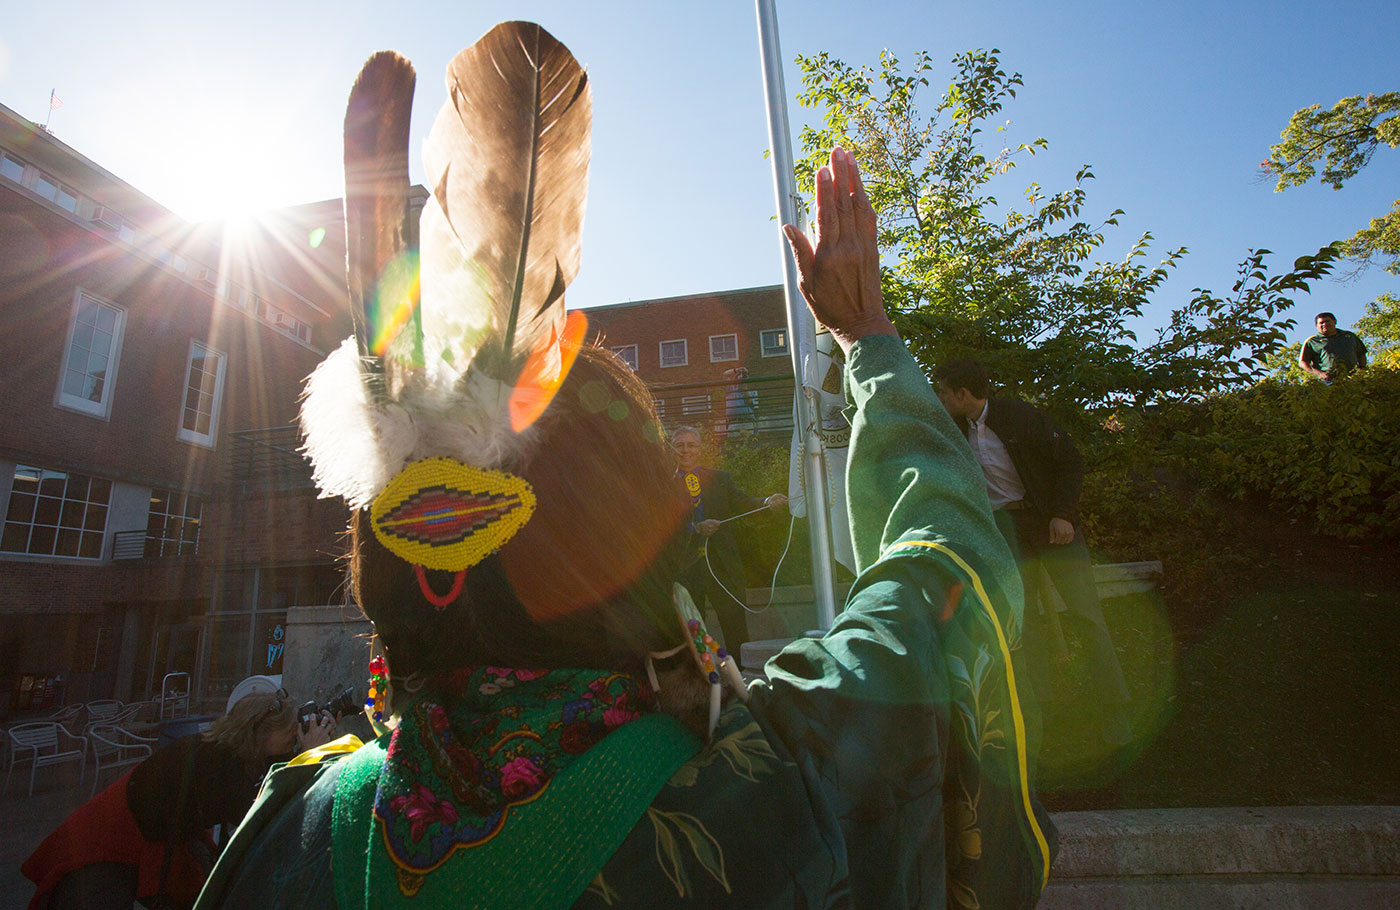 The sun peaks over the top of the EMU as an Native American raises their hand to honor the raising of their tribes flag in the EMU amphitheater.